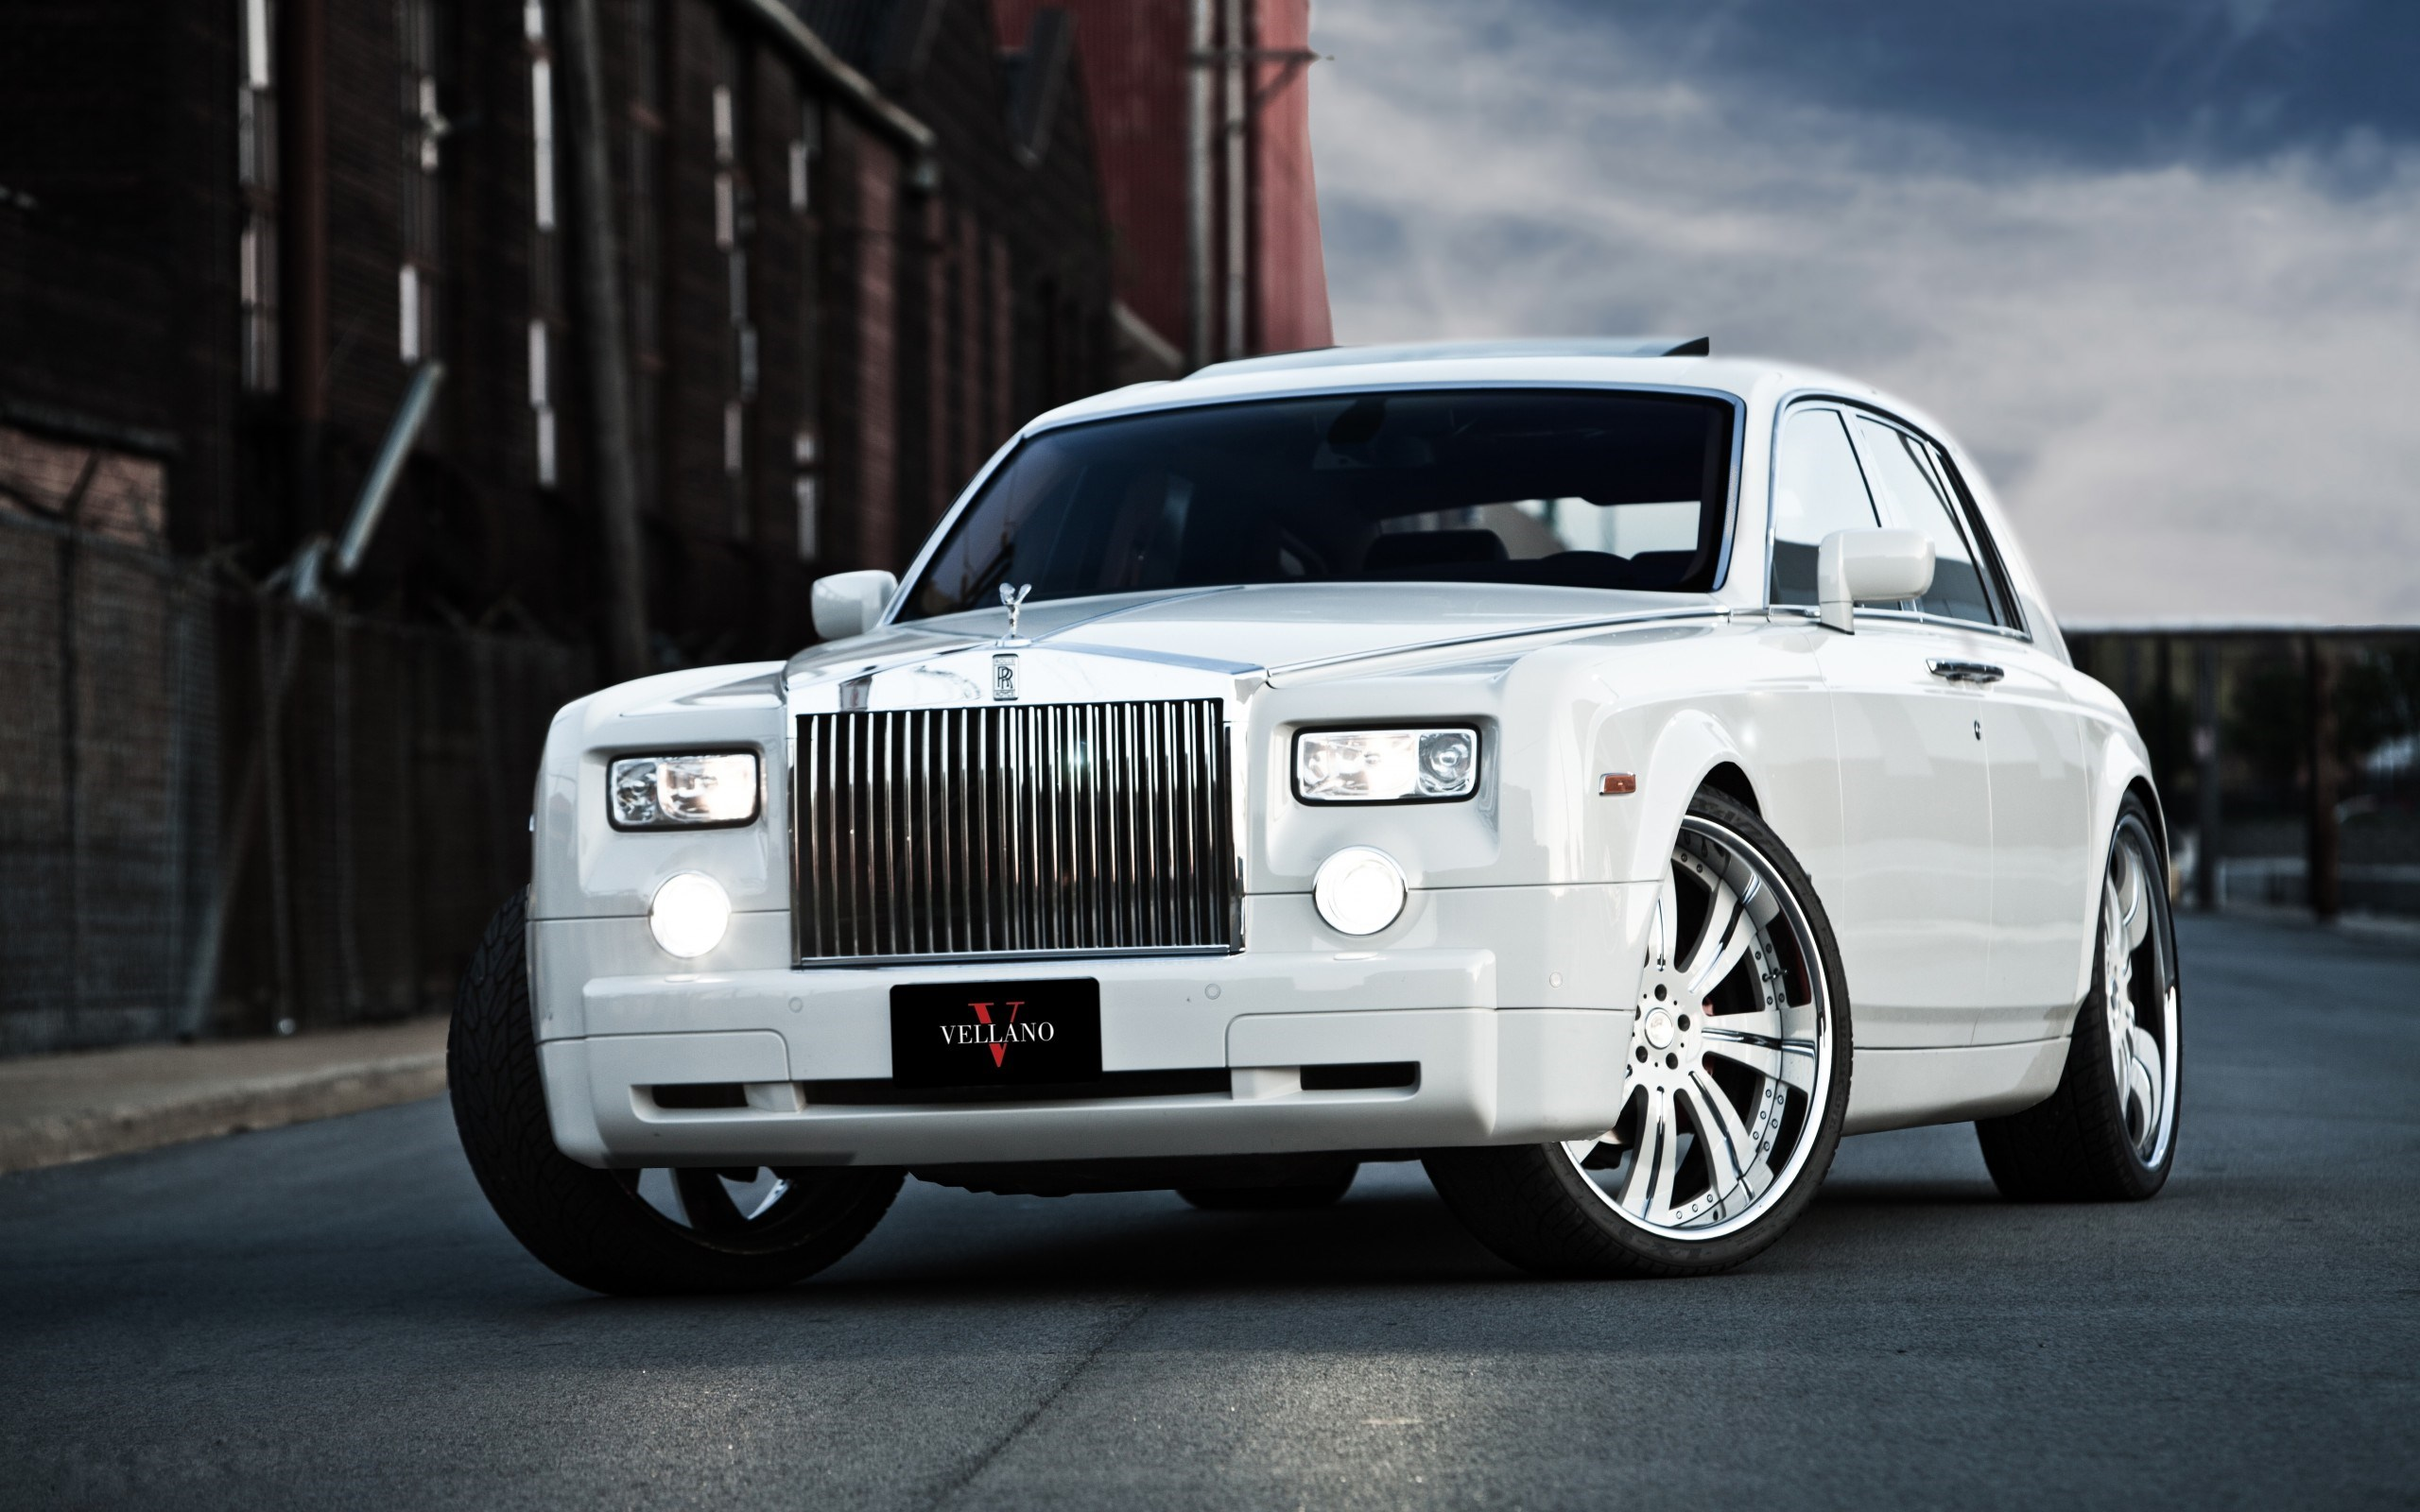 Rolls Royce Phantom White Wallpaper 2560x1600 17844